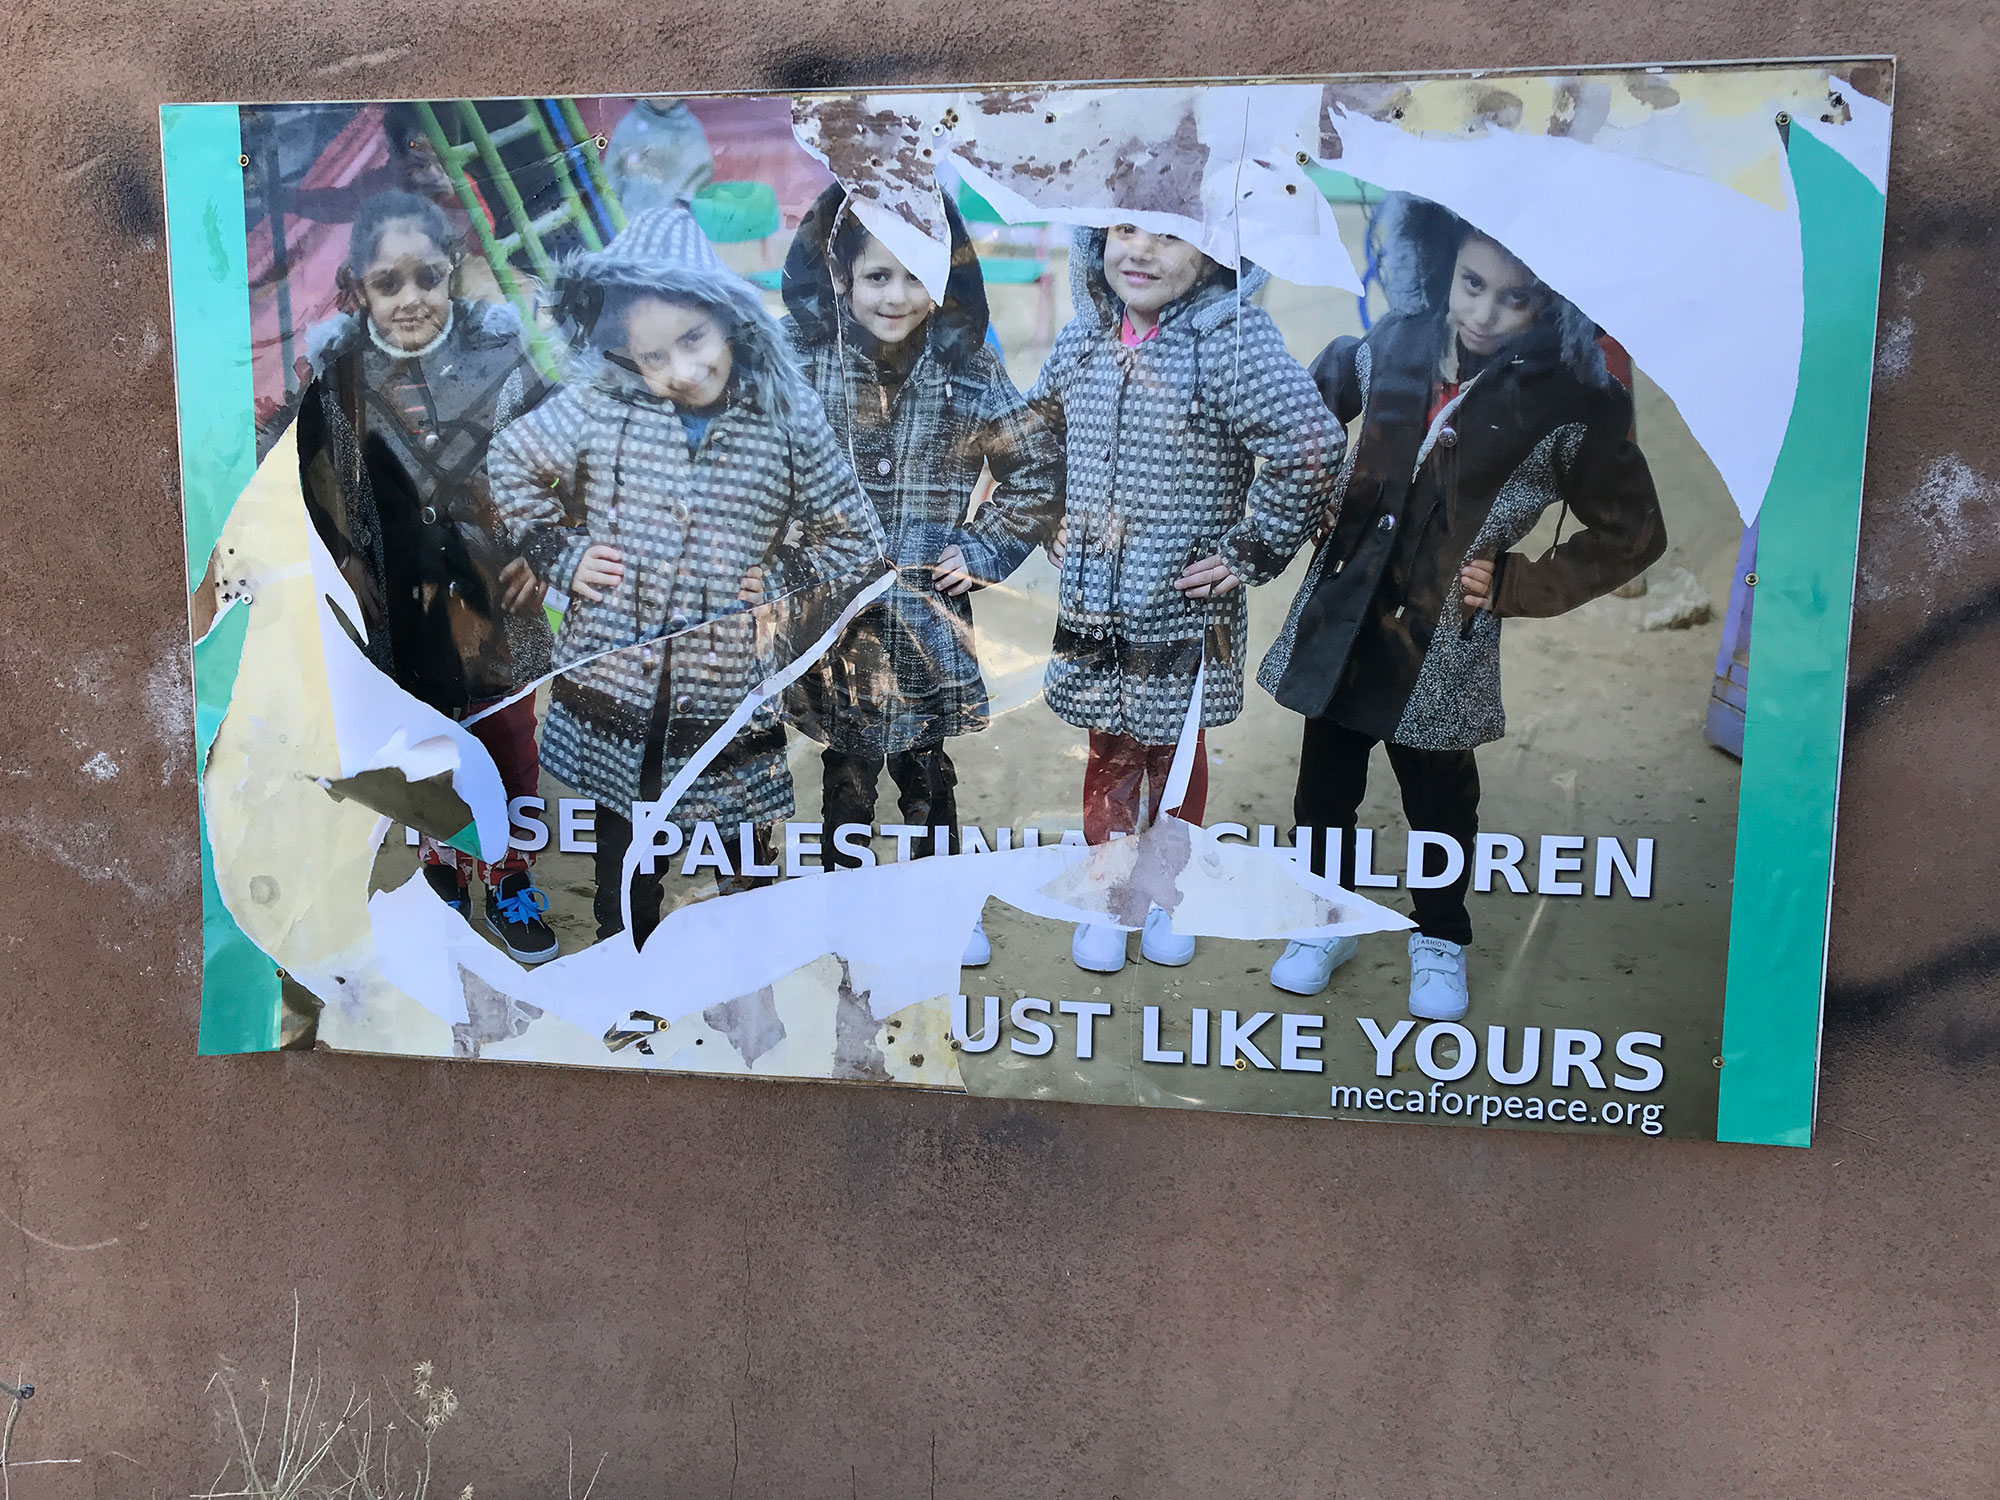 This photo of Palestinian children was torn apart within 72 hours of display.